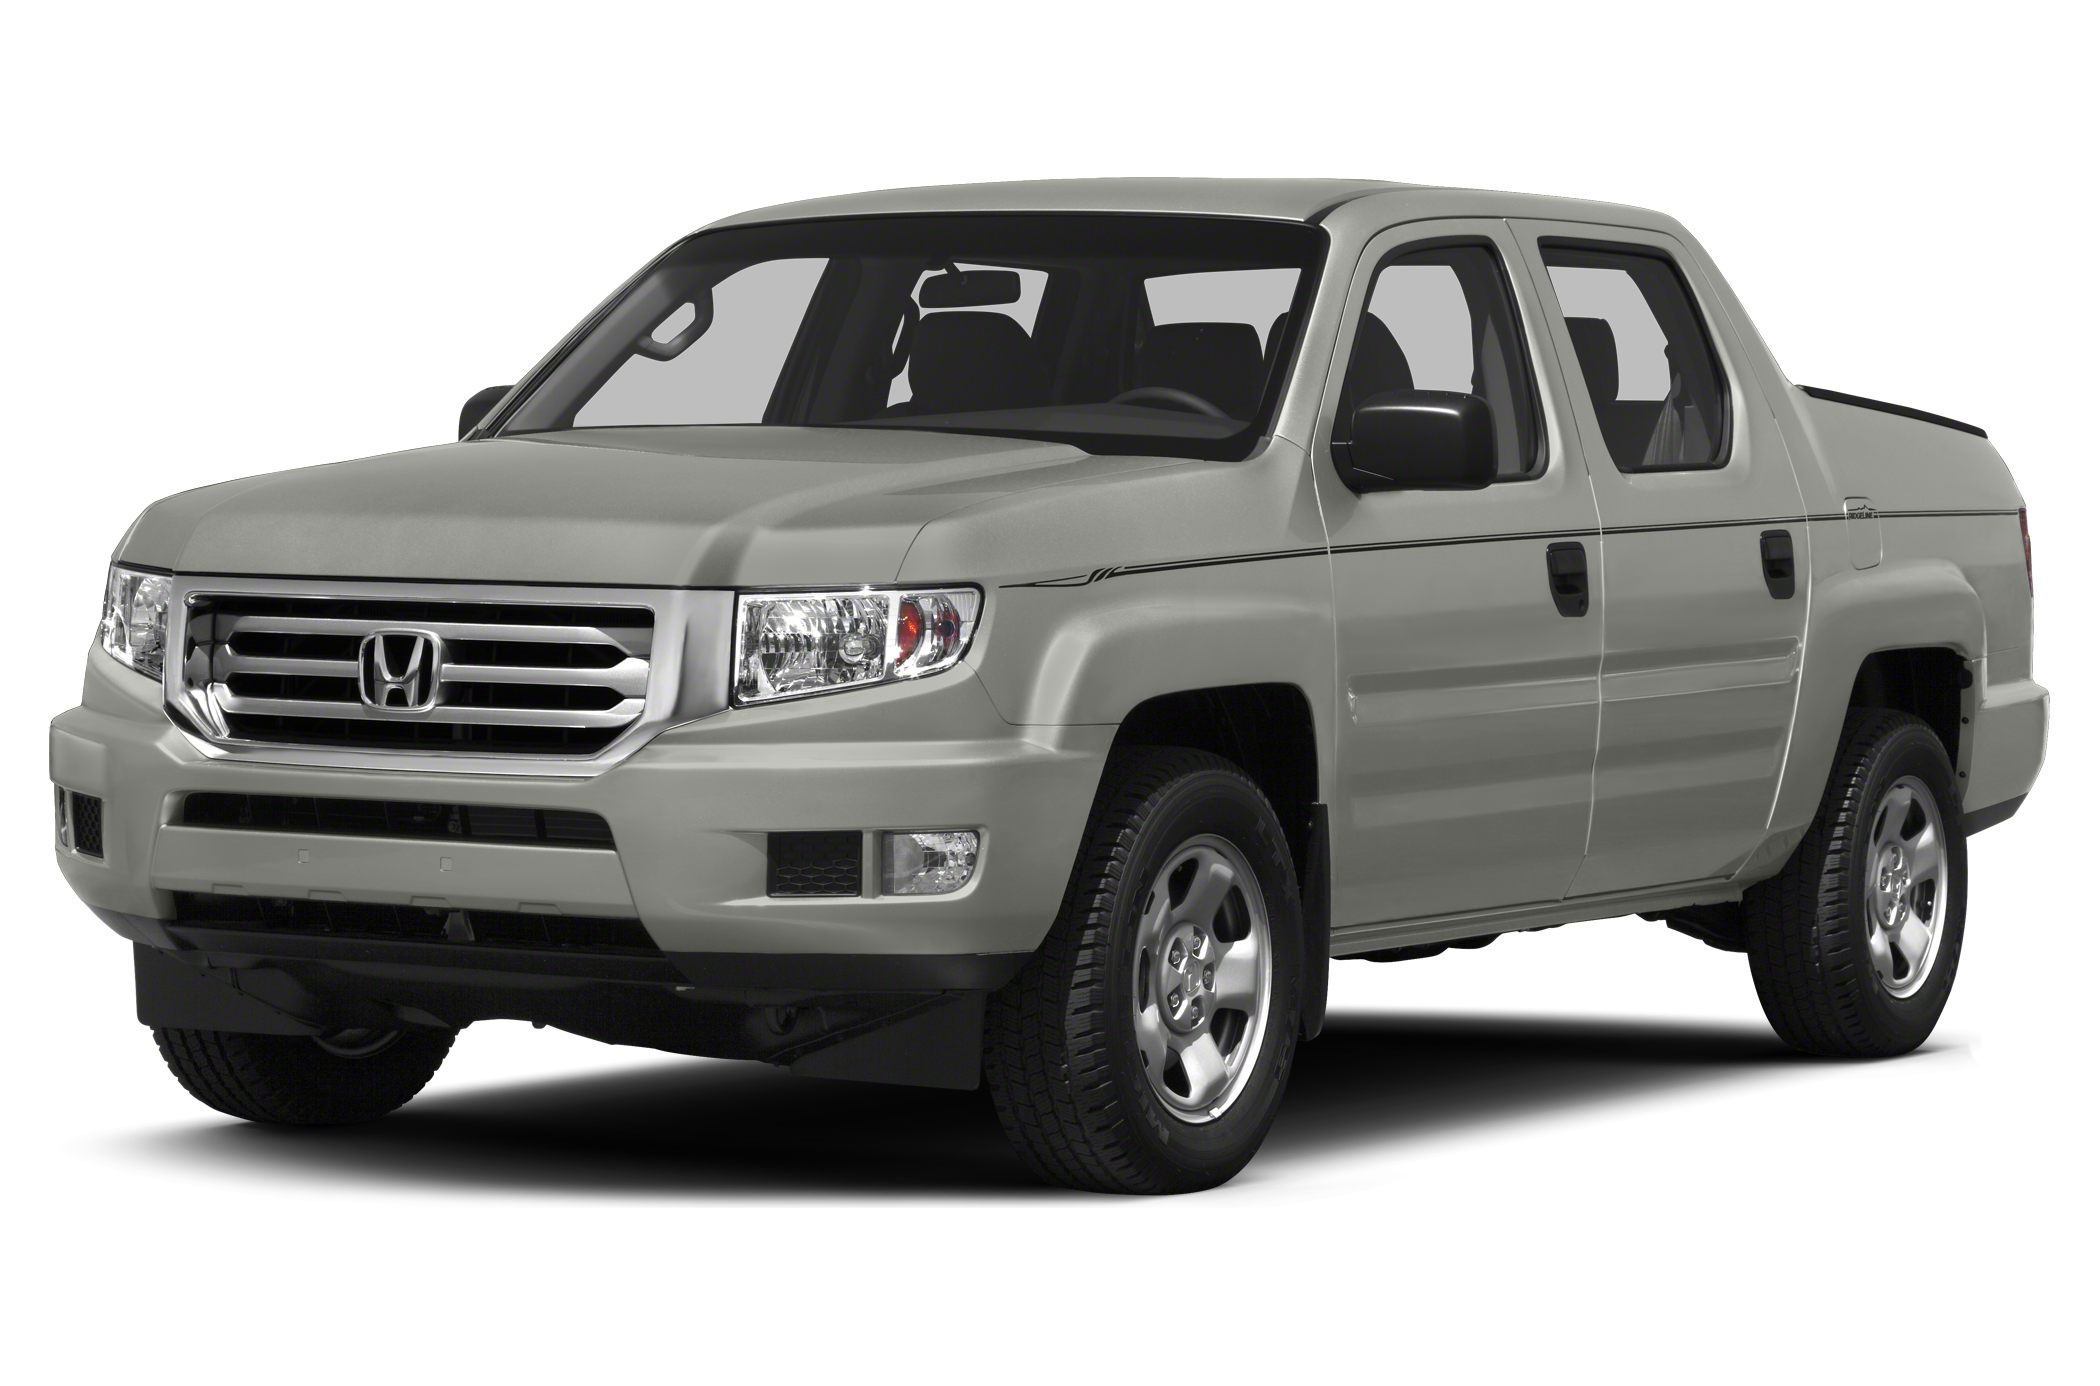 2014 Honda Ridgeline RTL Crew Cab Pickup for sale in Springfield for $35,985 with 0 miles.